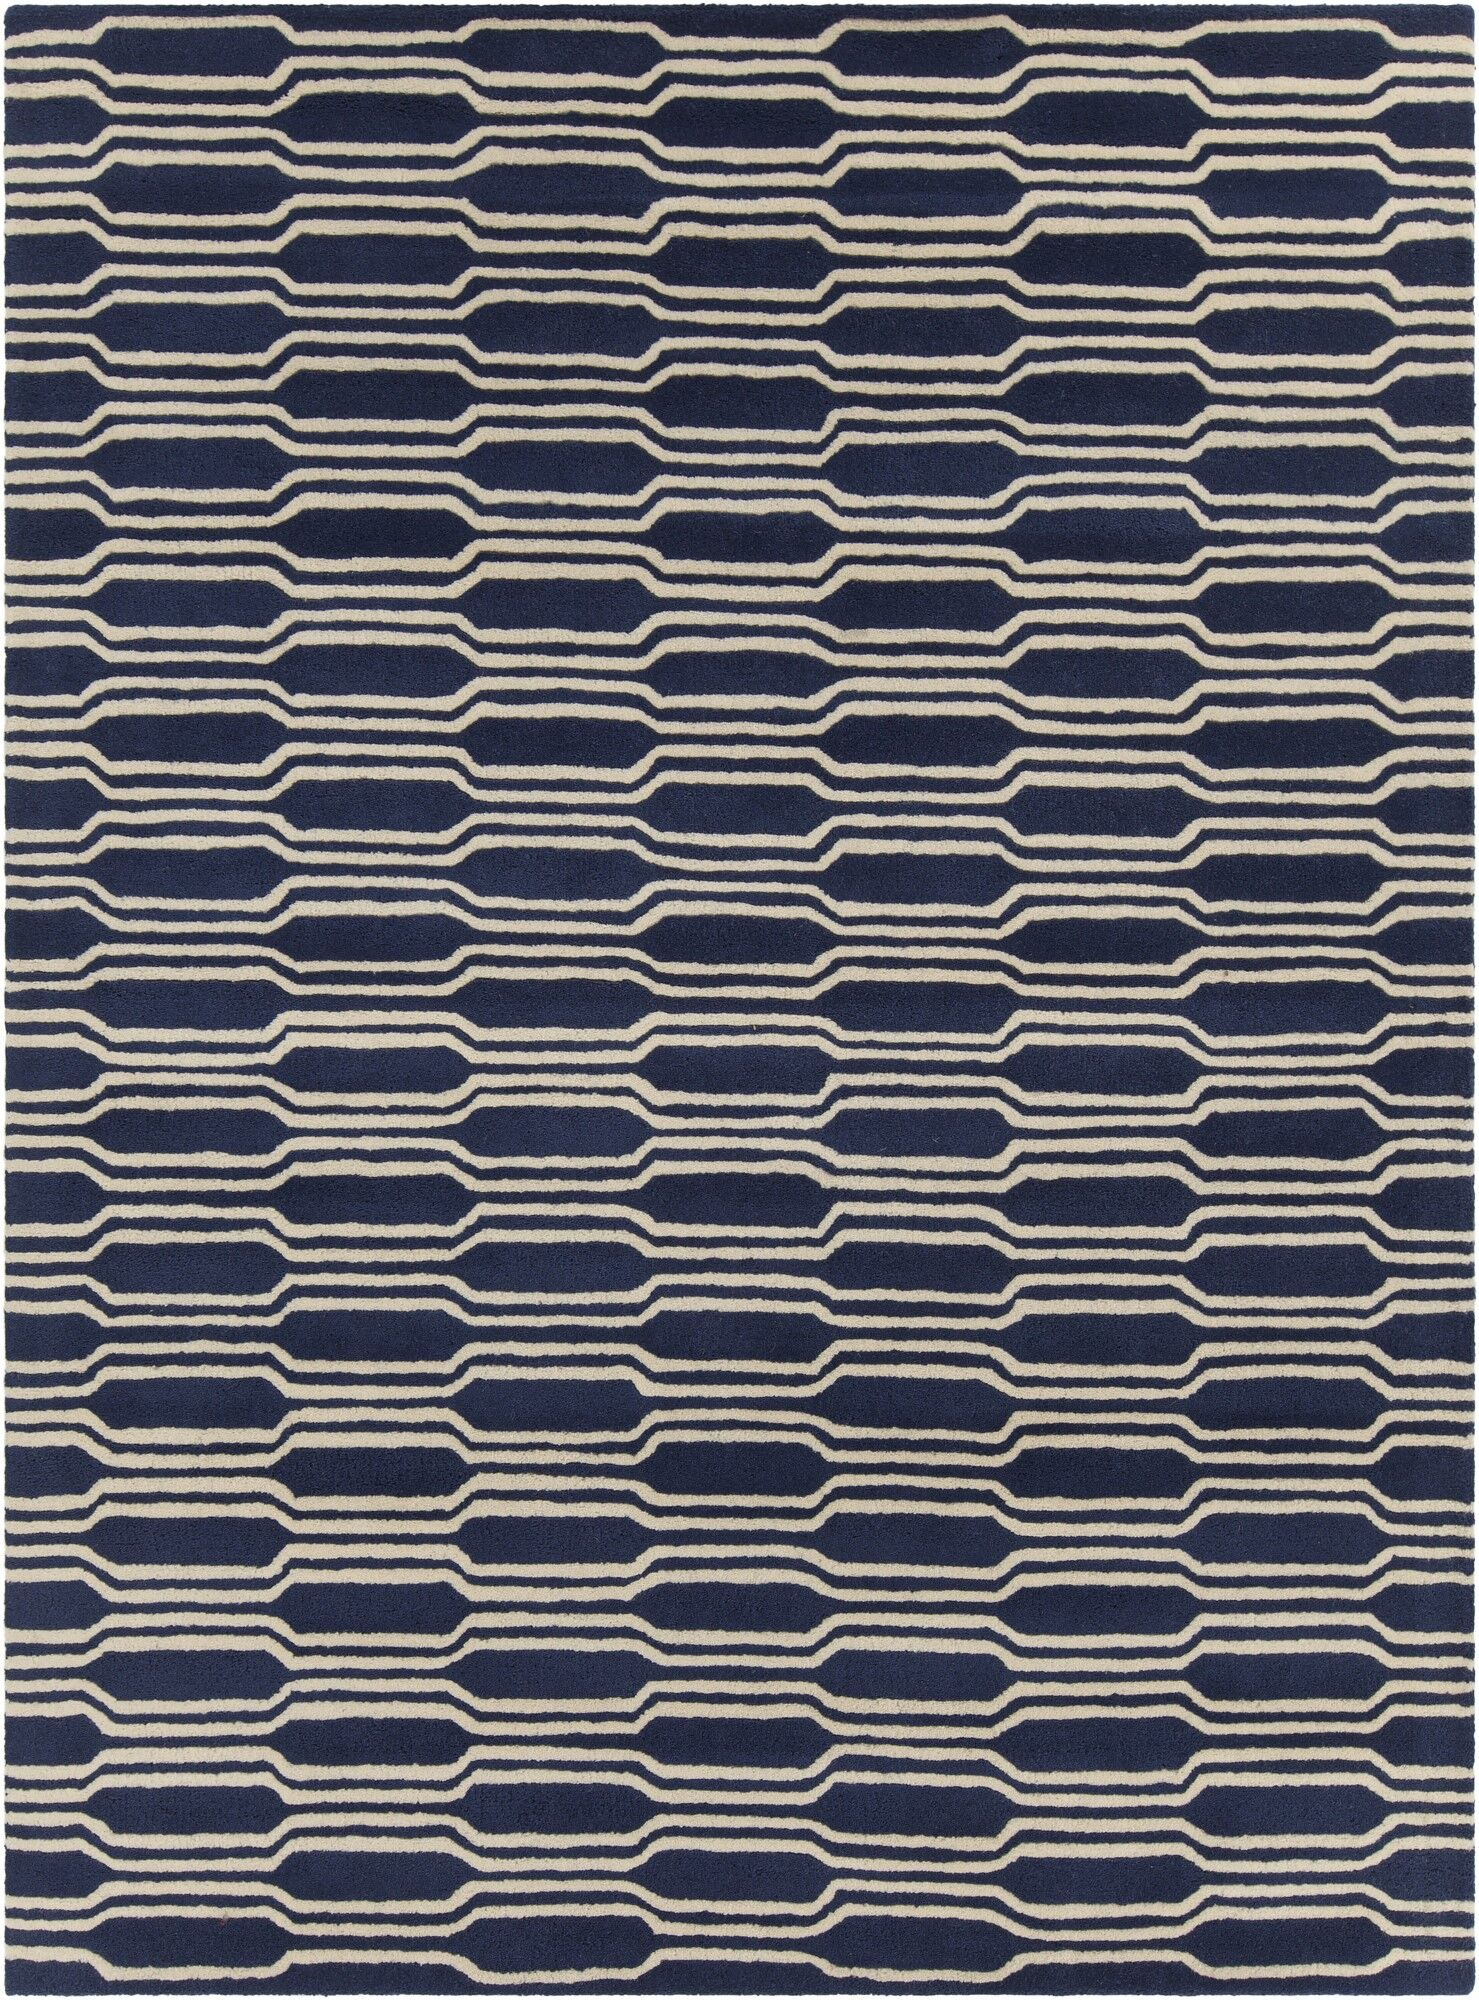 Electra Hand Tufted Rectangle Contemporary Blue/Cream Area Rug Rug Size: 5' x 7'